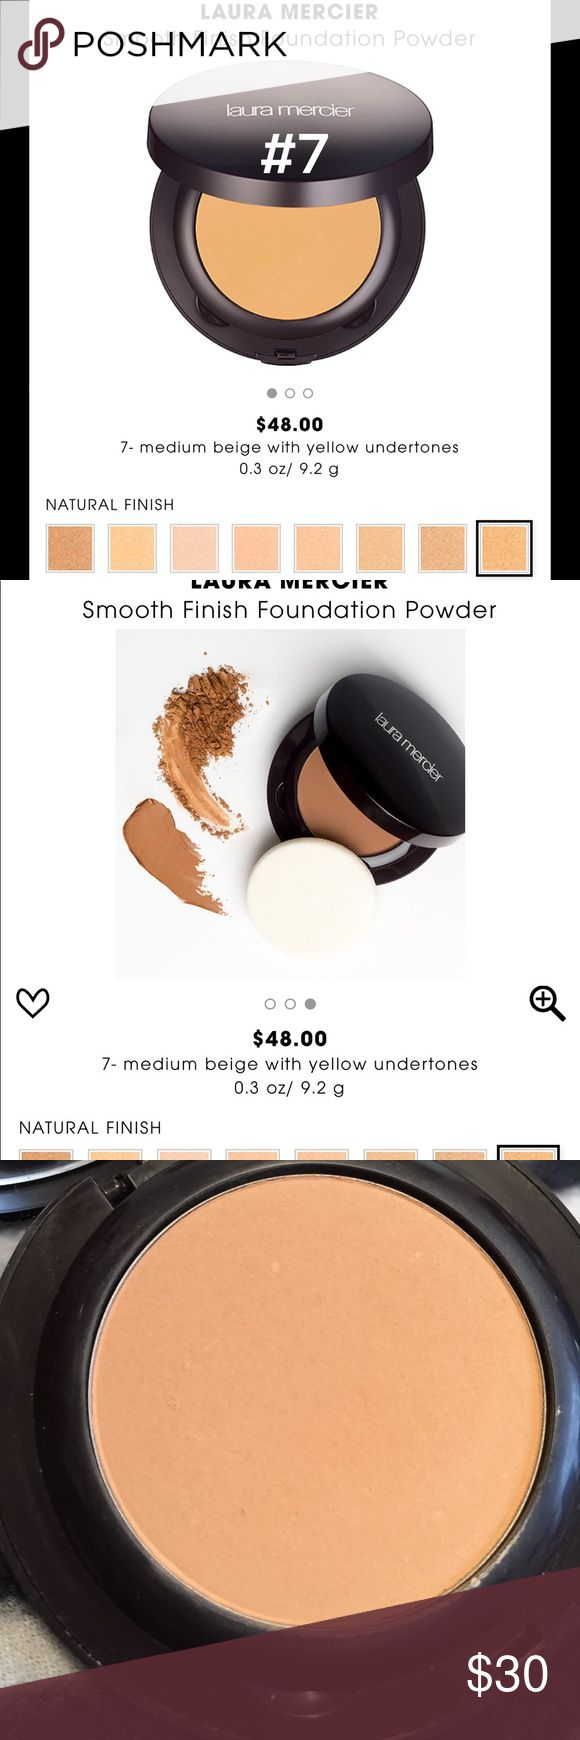 laura mercier smooth finish powder foundation #7 laura mercier smooth finish powder foundation ~ shade is #7- medium beige with yellow undertones ~ used a couple of times/still full ~ no box ~ 💯% authentic laura mercier Makeup Foundation